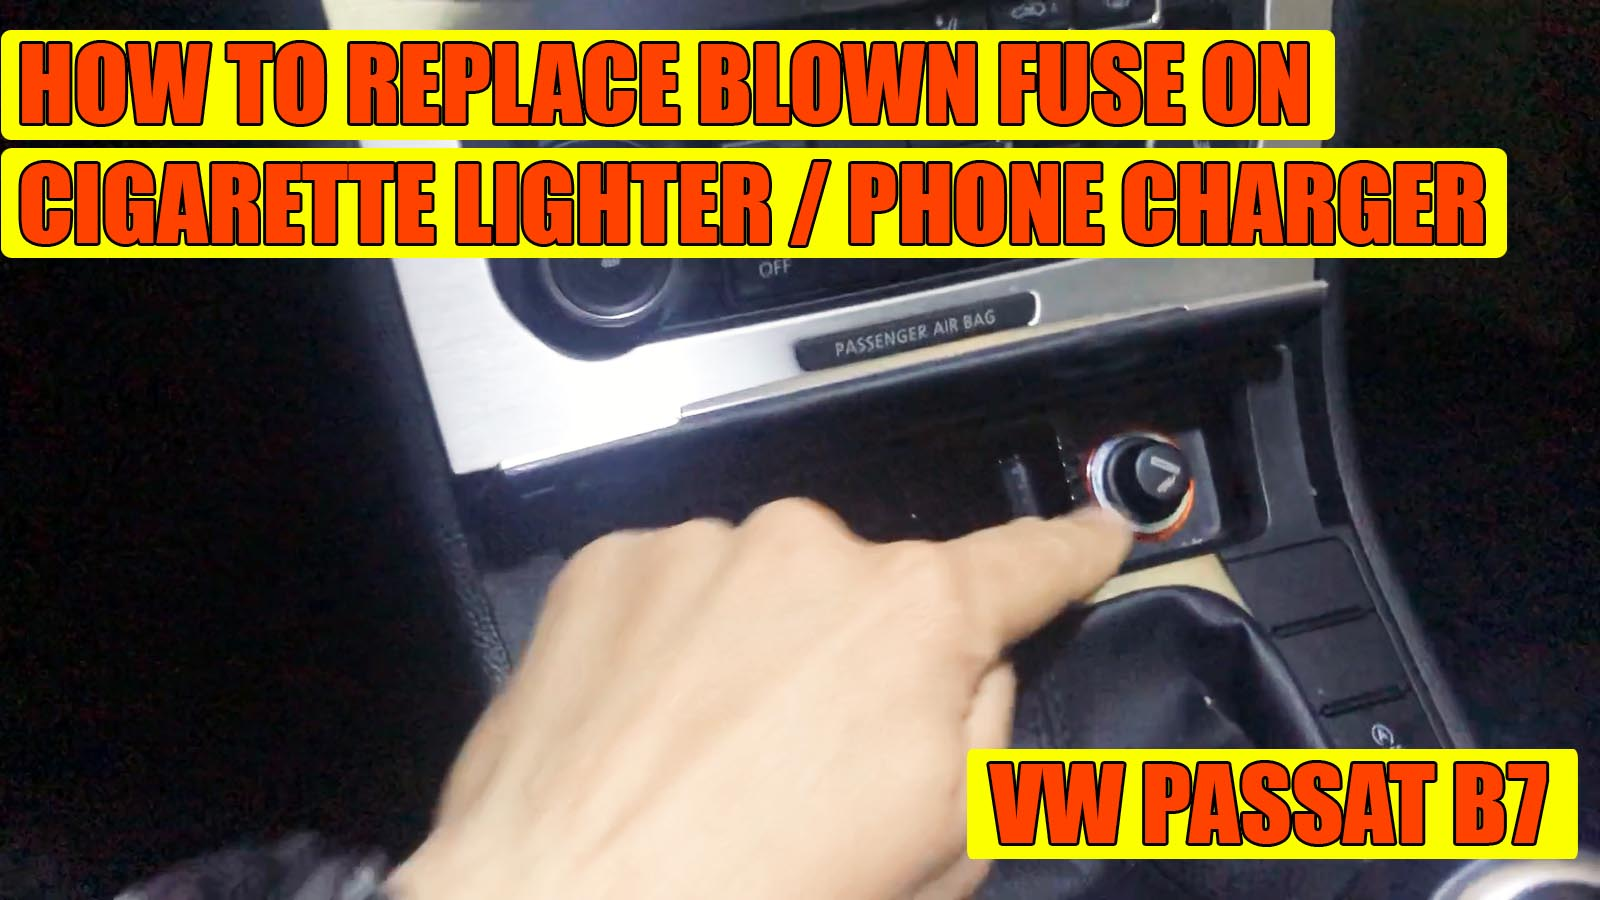 Phone Charger Cigarette Lighter Not Working Fuse